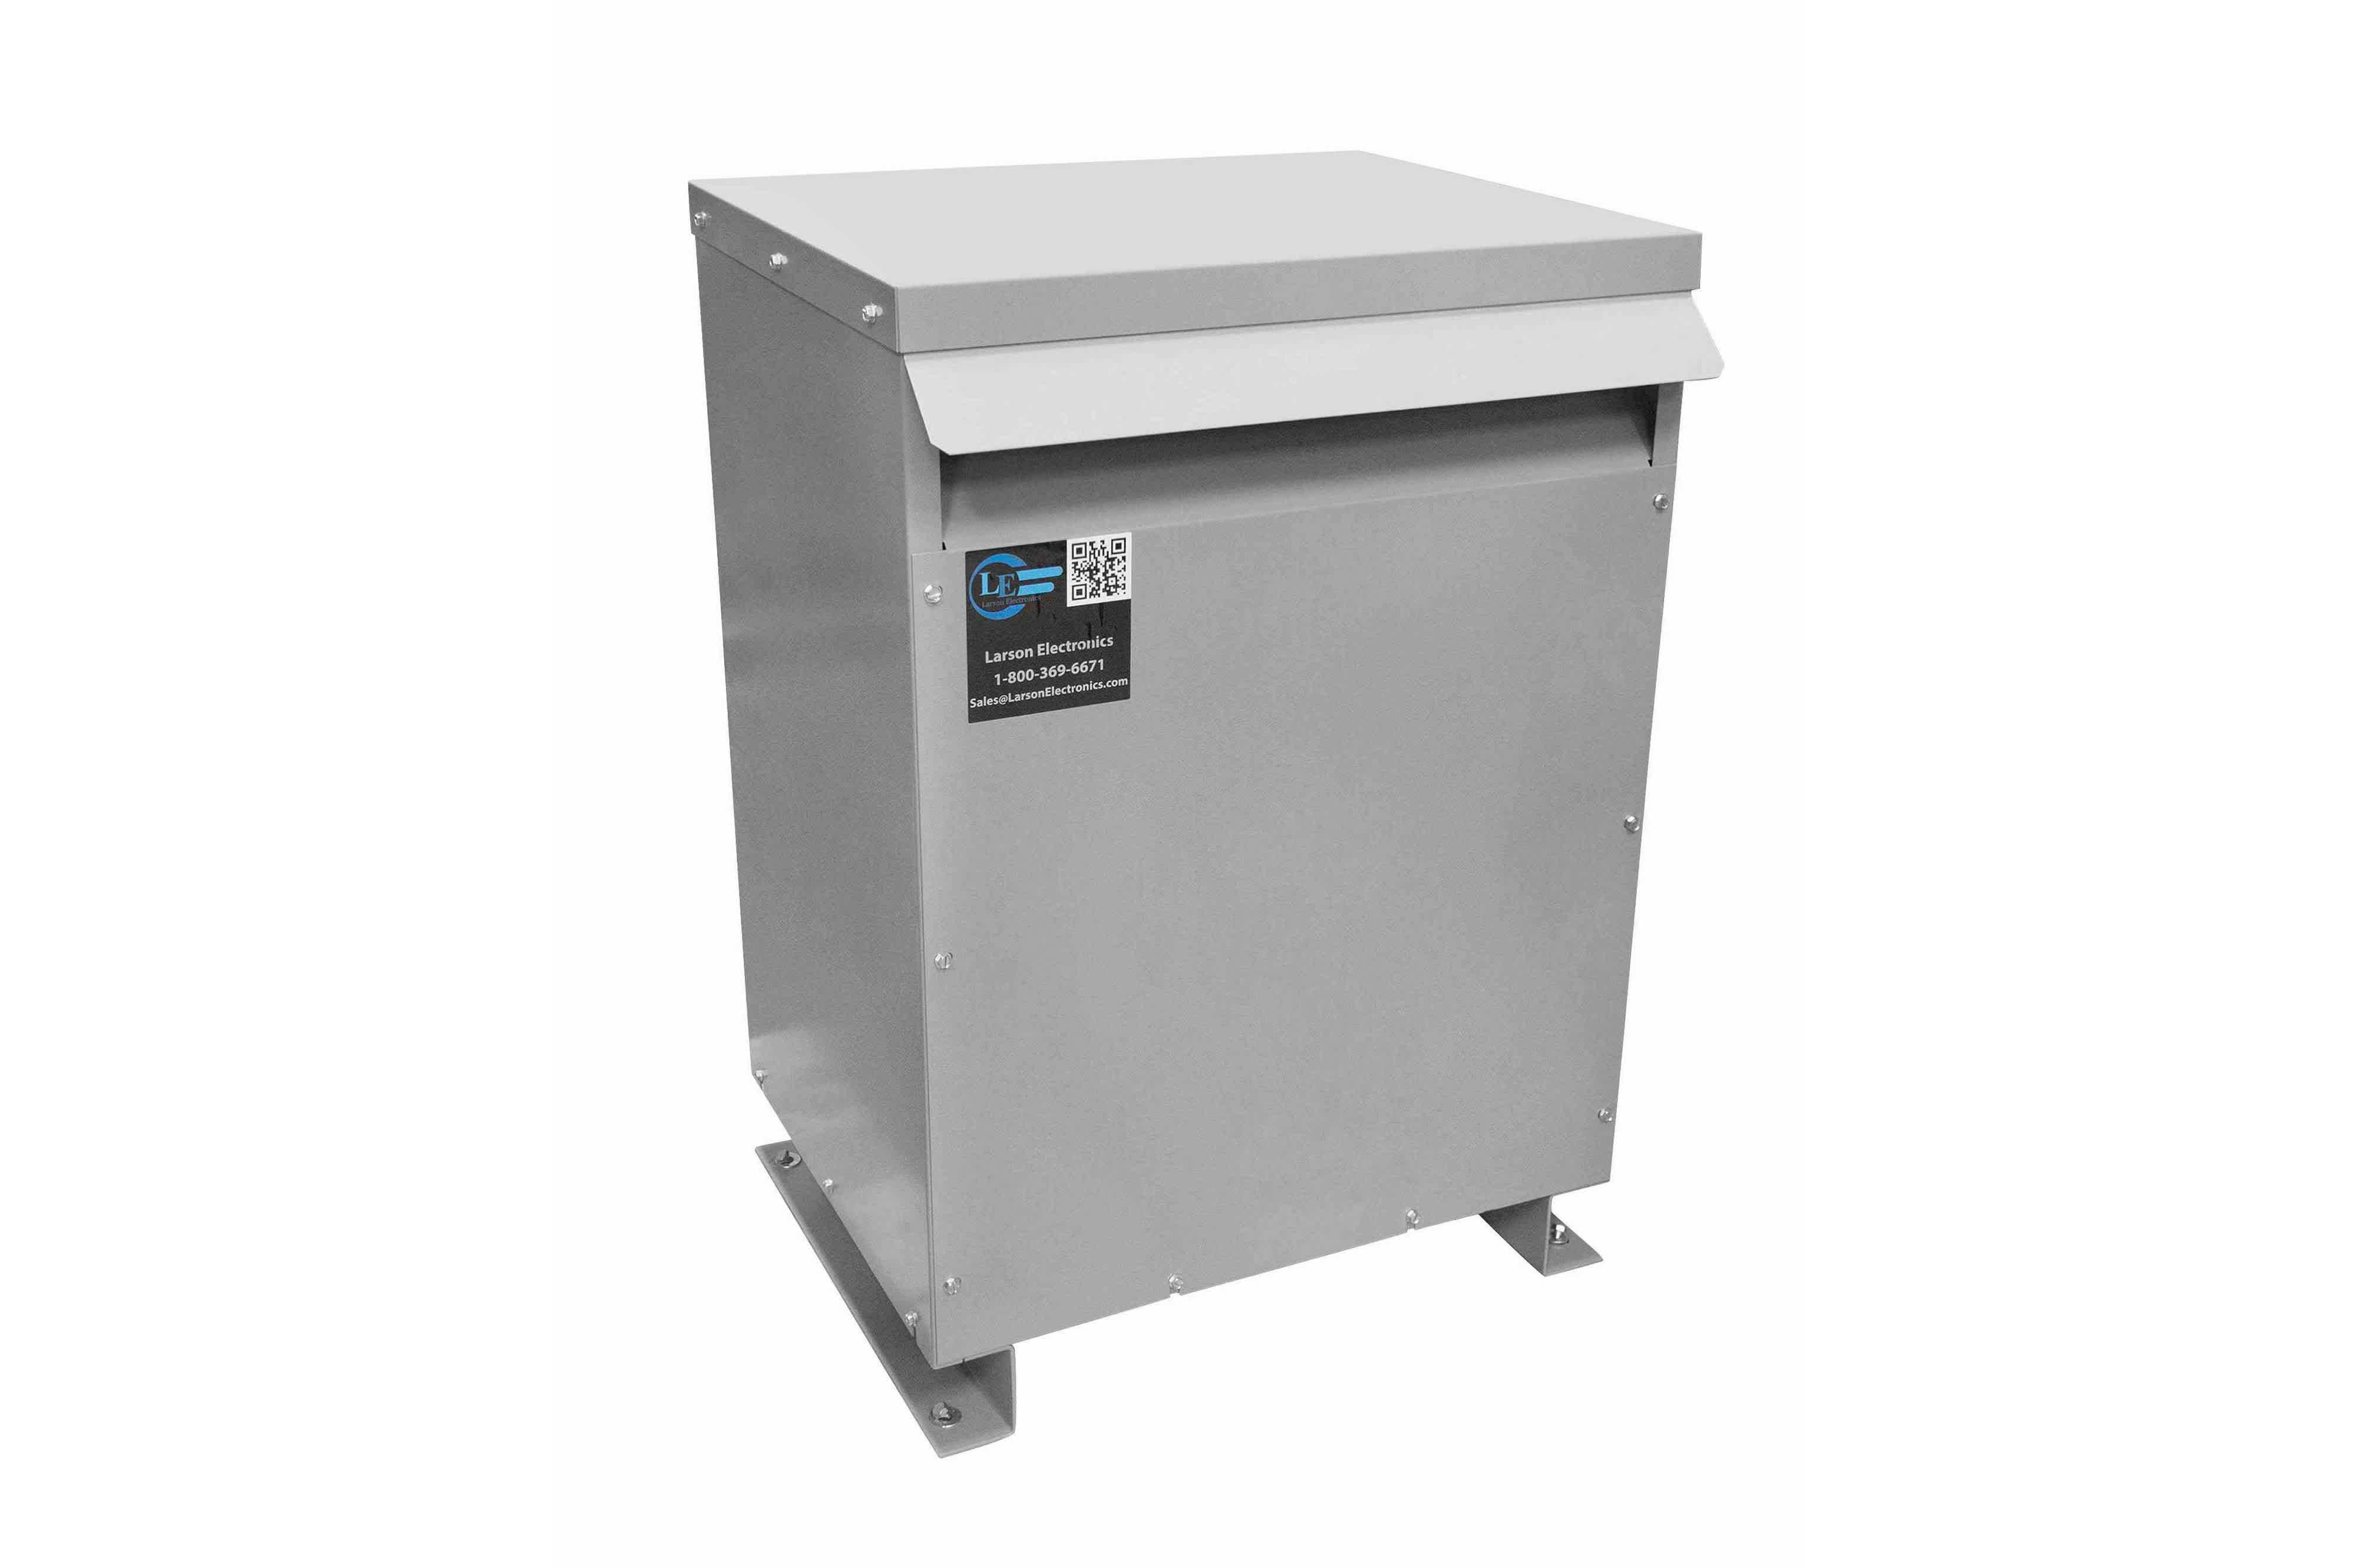 22.5 kVA 3PH Isolation Transformer, 460V Wye Primary, 415V Delta Secondary, N3R, Ventilated, 60 Hz